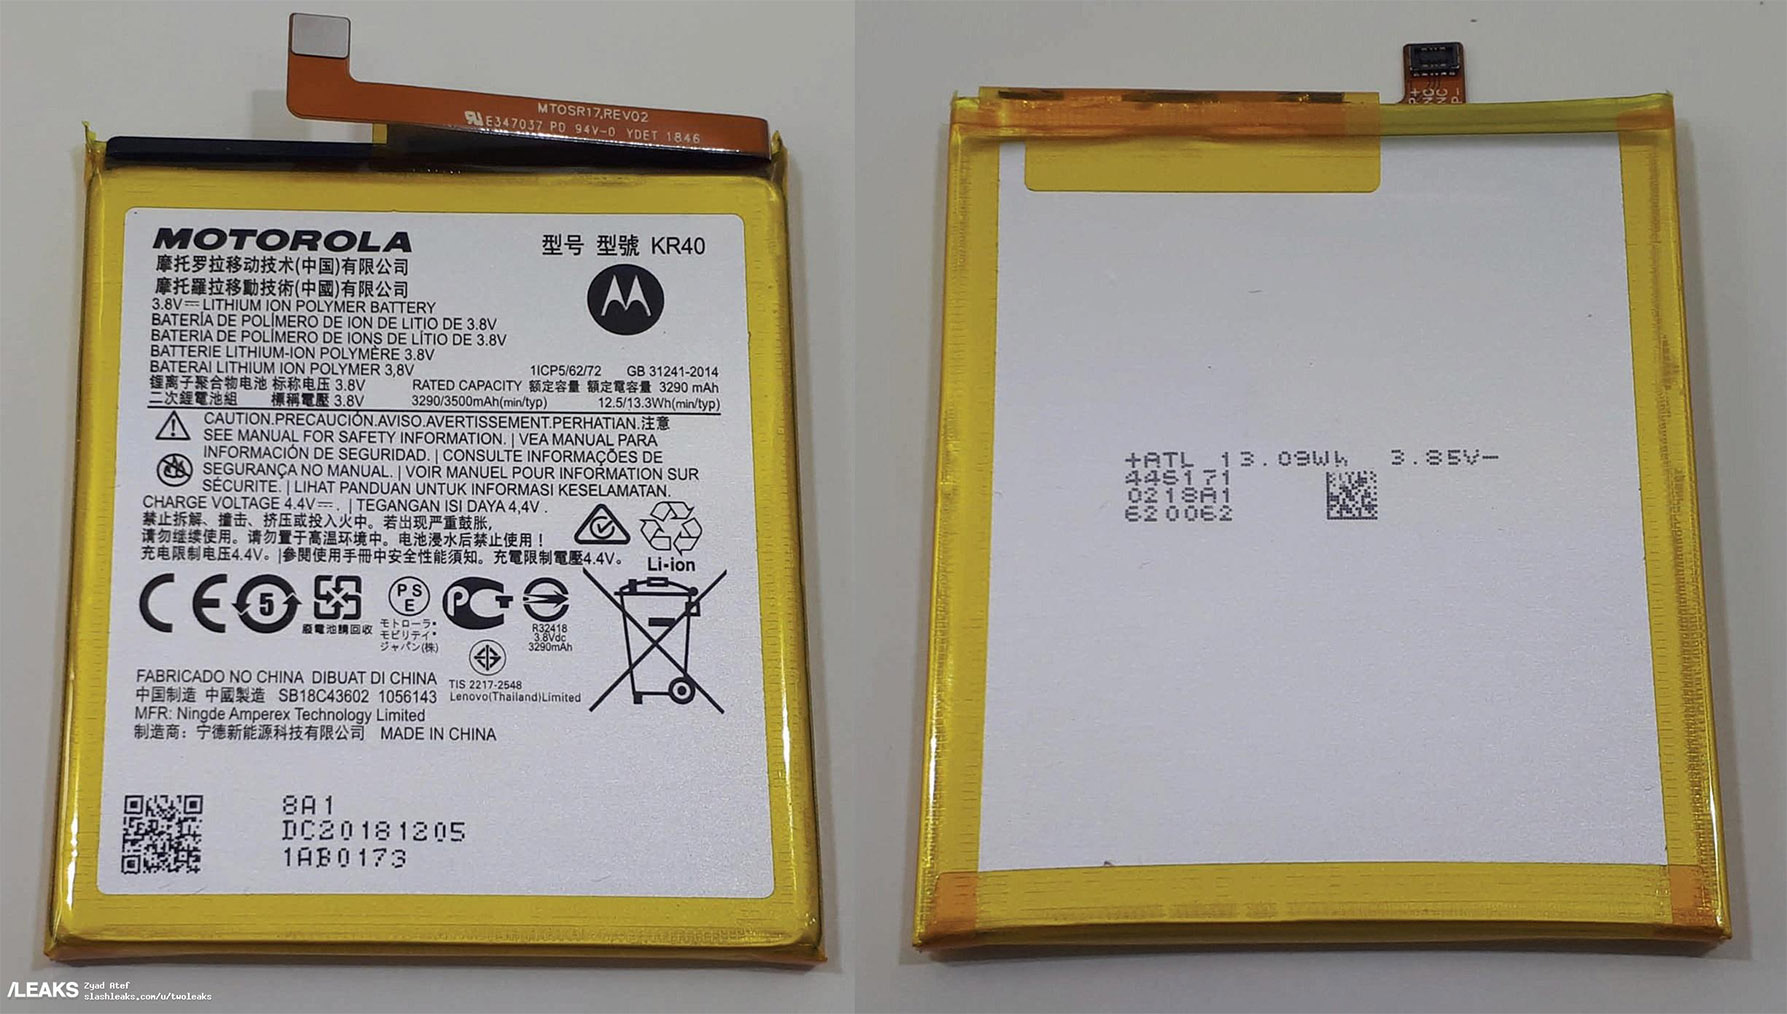 Motorola One Vision battery